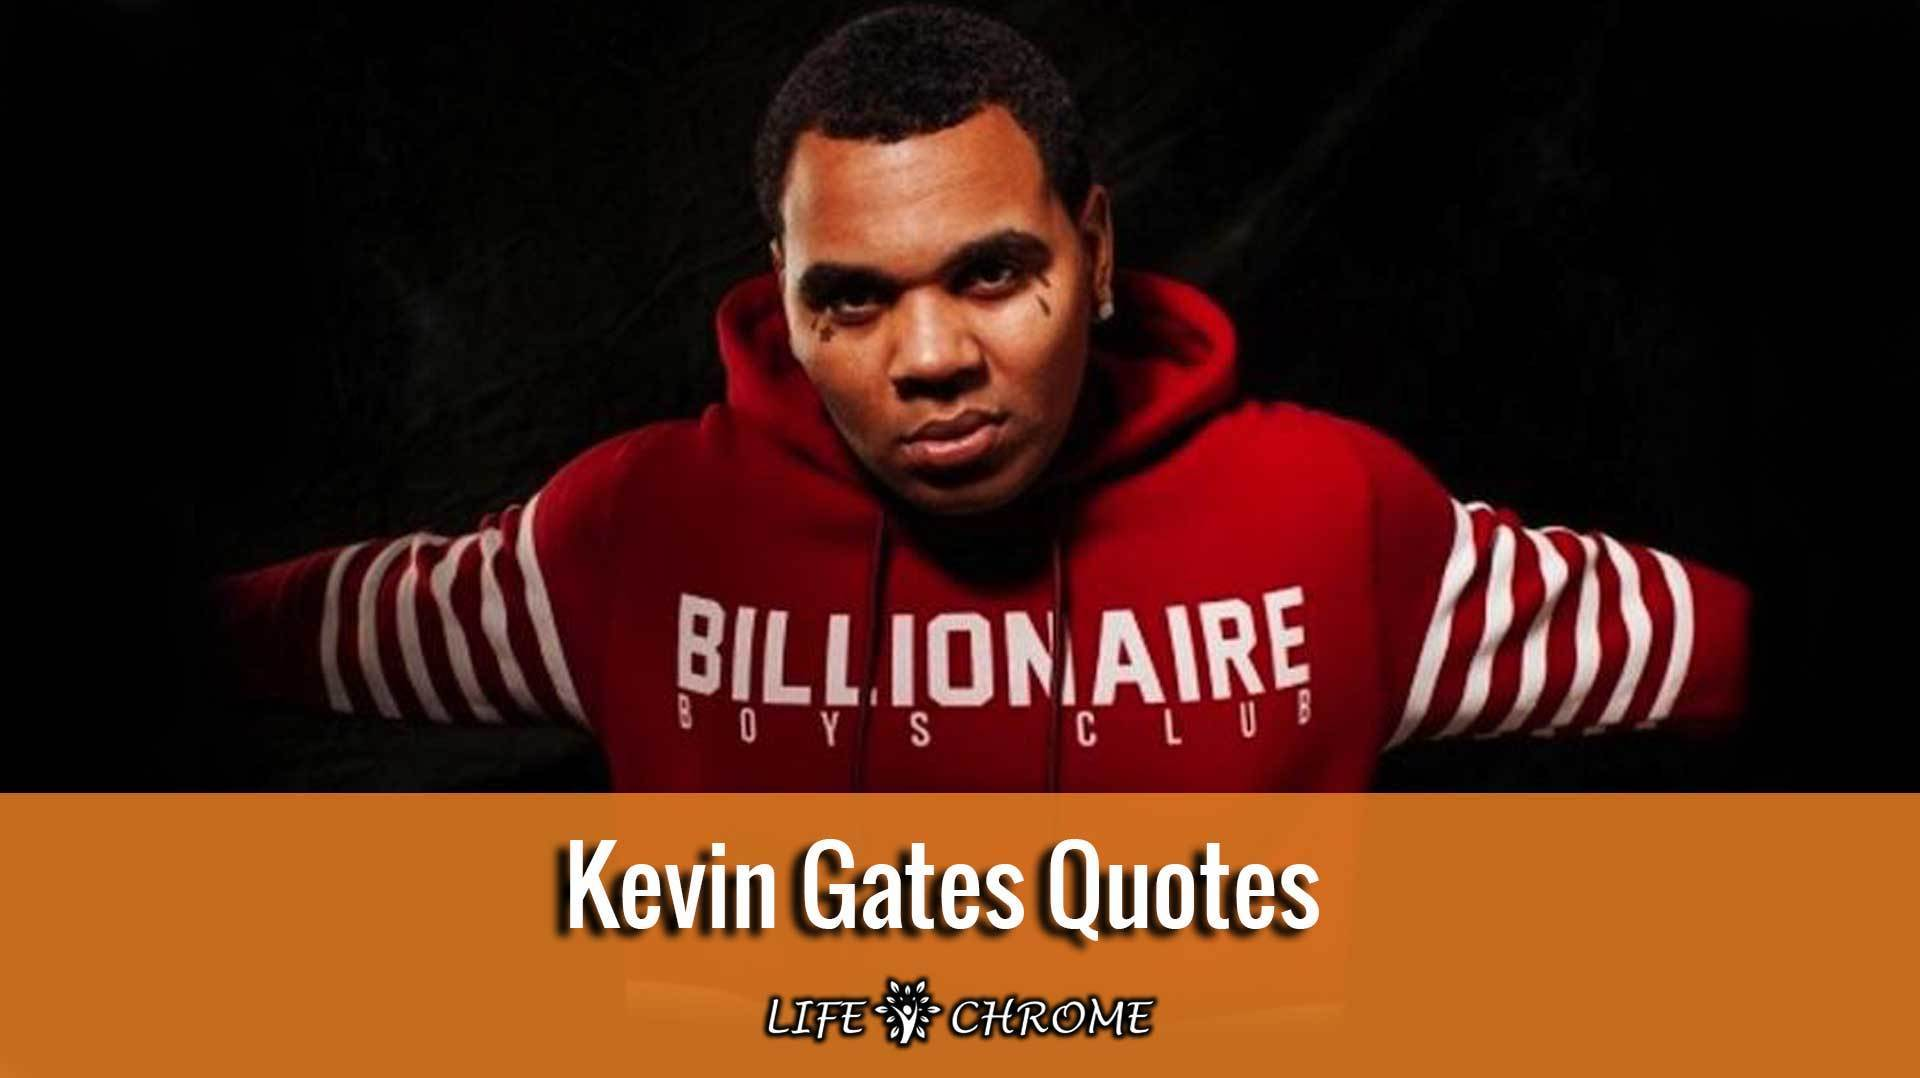 Kevin Gates Quotes (Best 75) | Famous People\'s Quotes Series